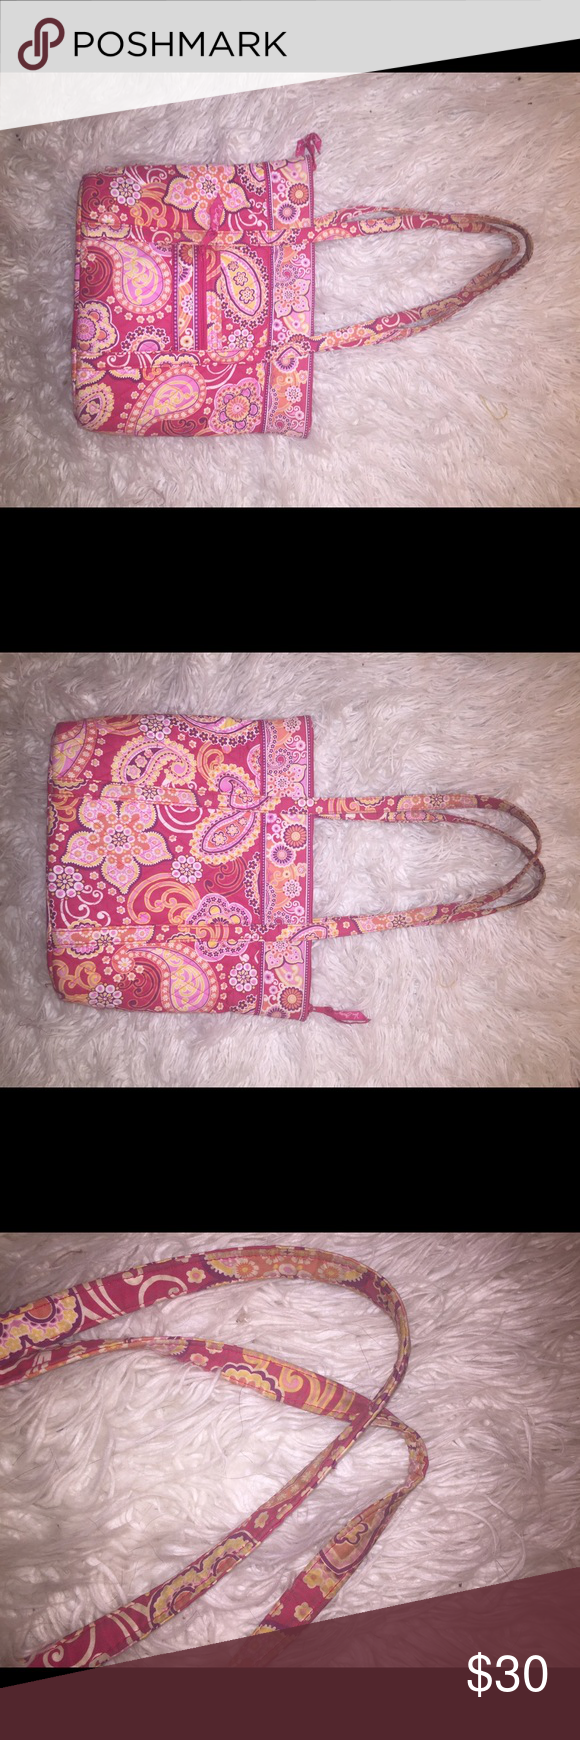 Vera Bradley tote bag Bag is in very good used condition. The straps at the top are slightly faded from use, they may look better after being washed! There is also one mark in the bottom (see pics of flaws). Make offers! Vera Bradley Bags Totes